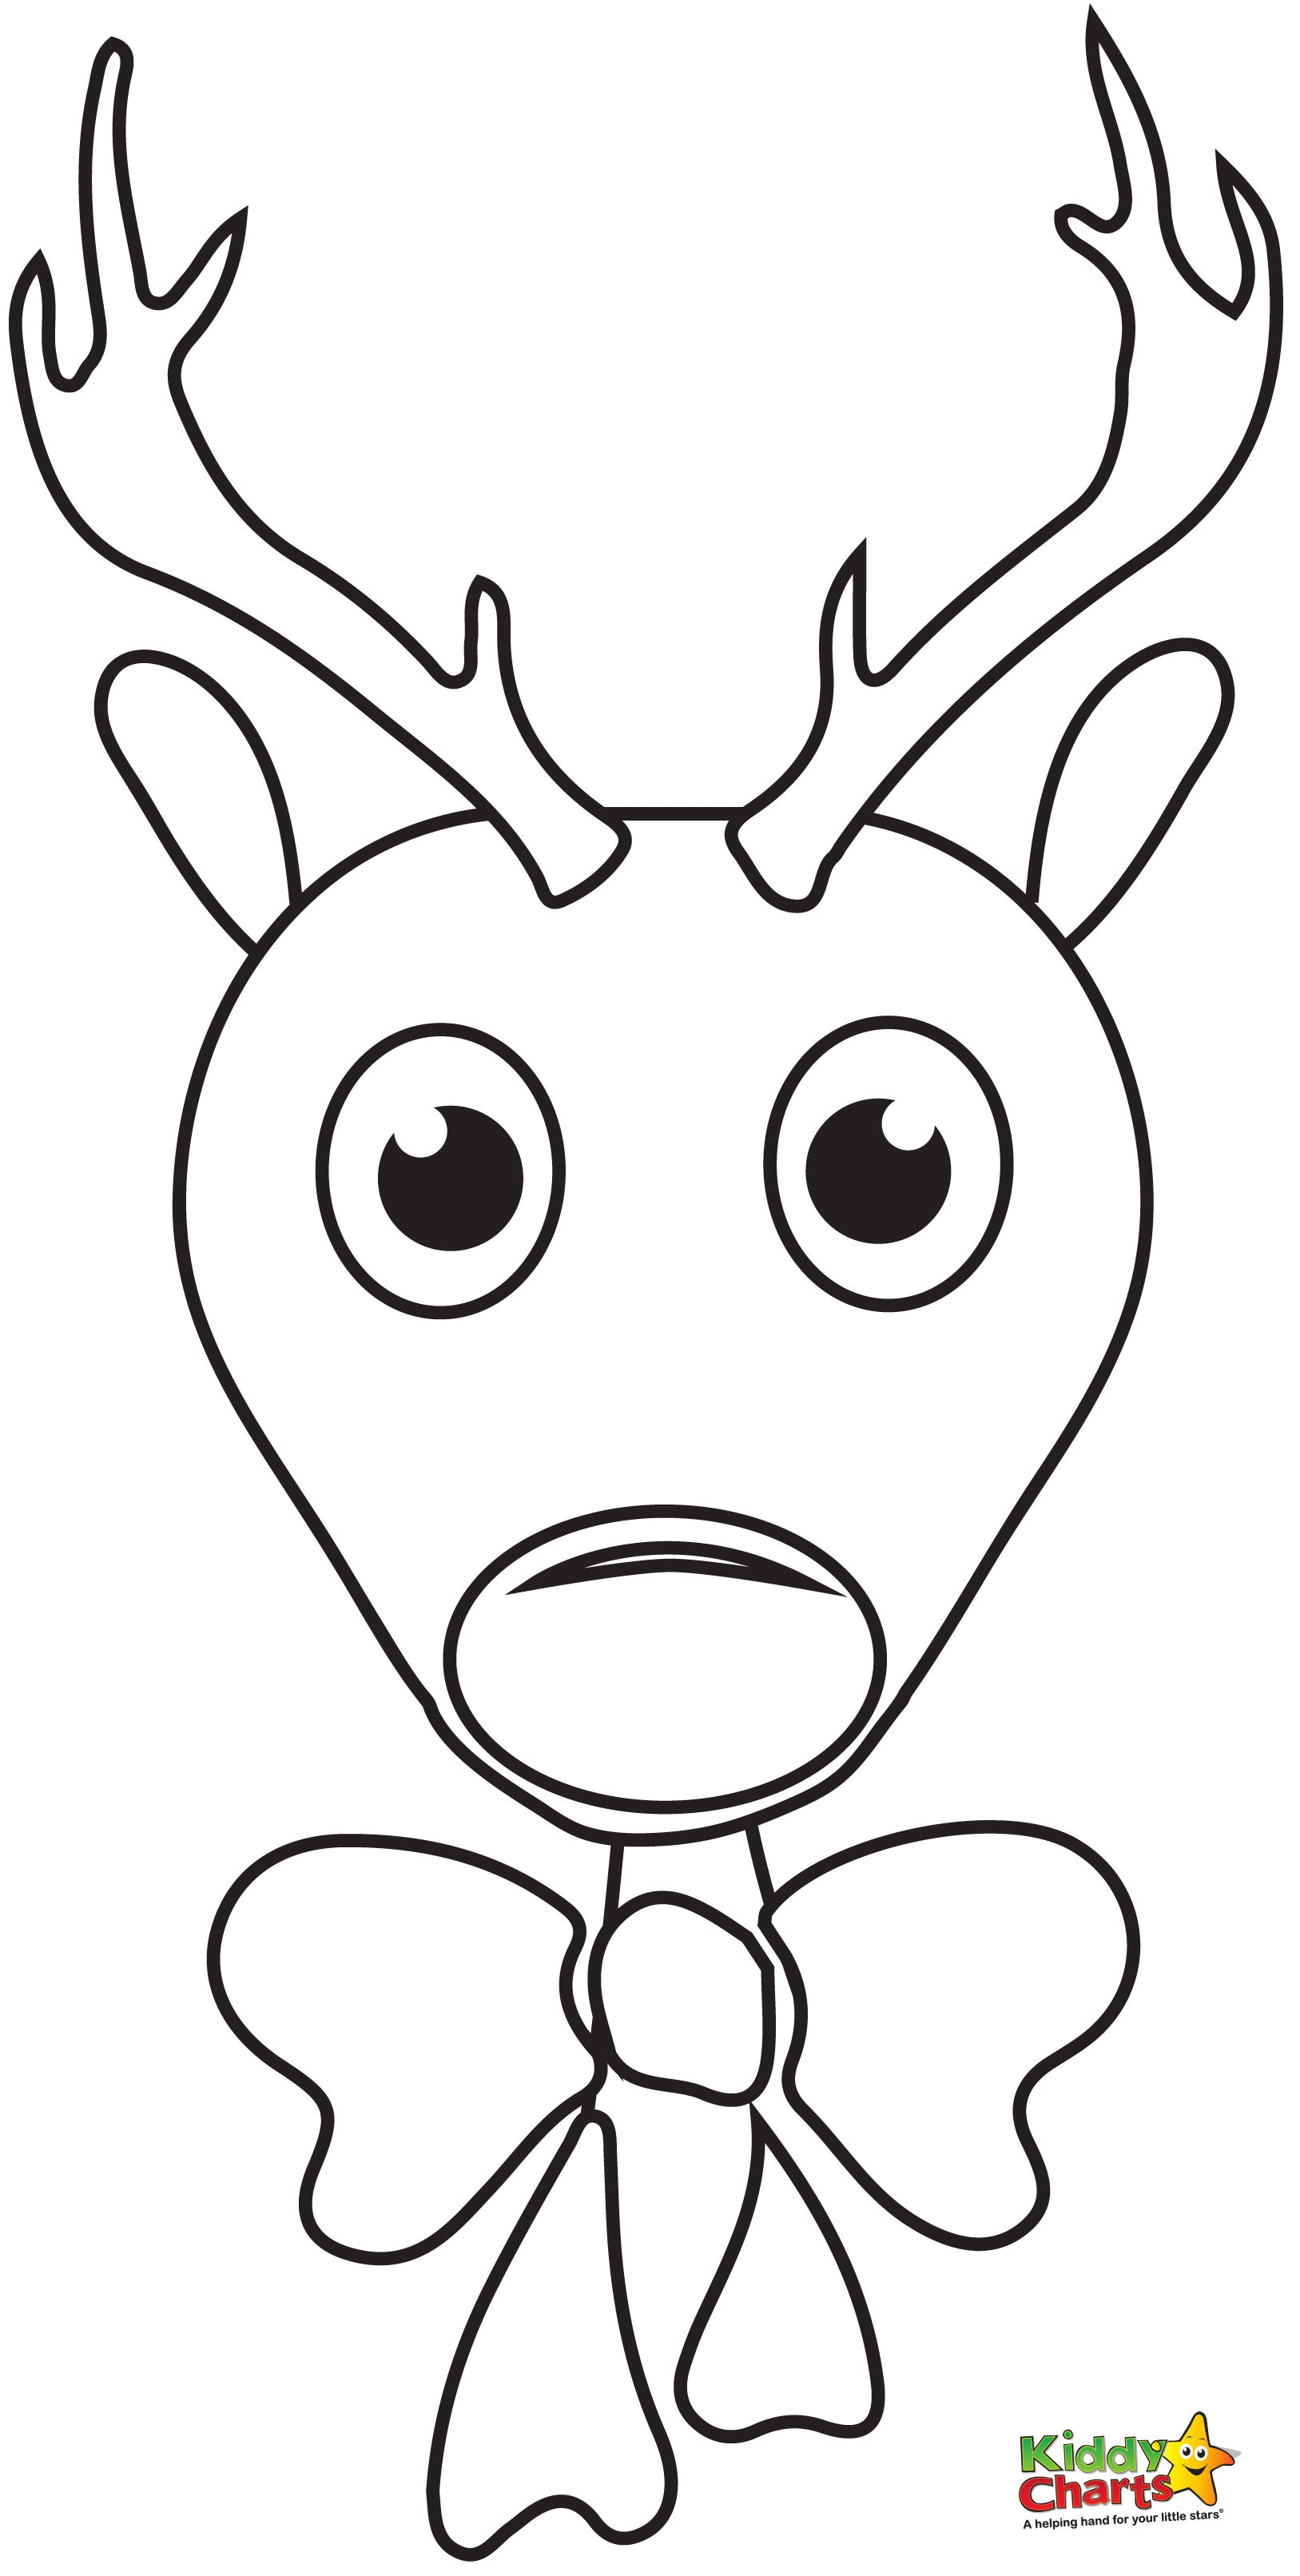 1627x3224 Reindeer Face Coloring Pages Free For Kids Fair Acpra